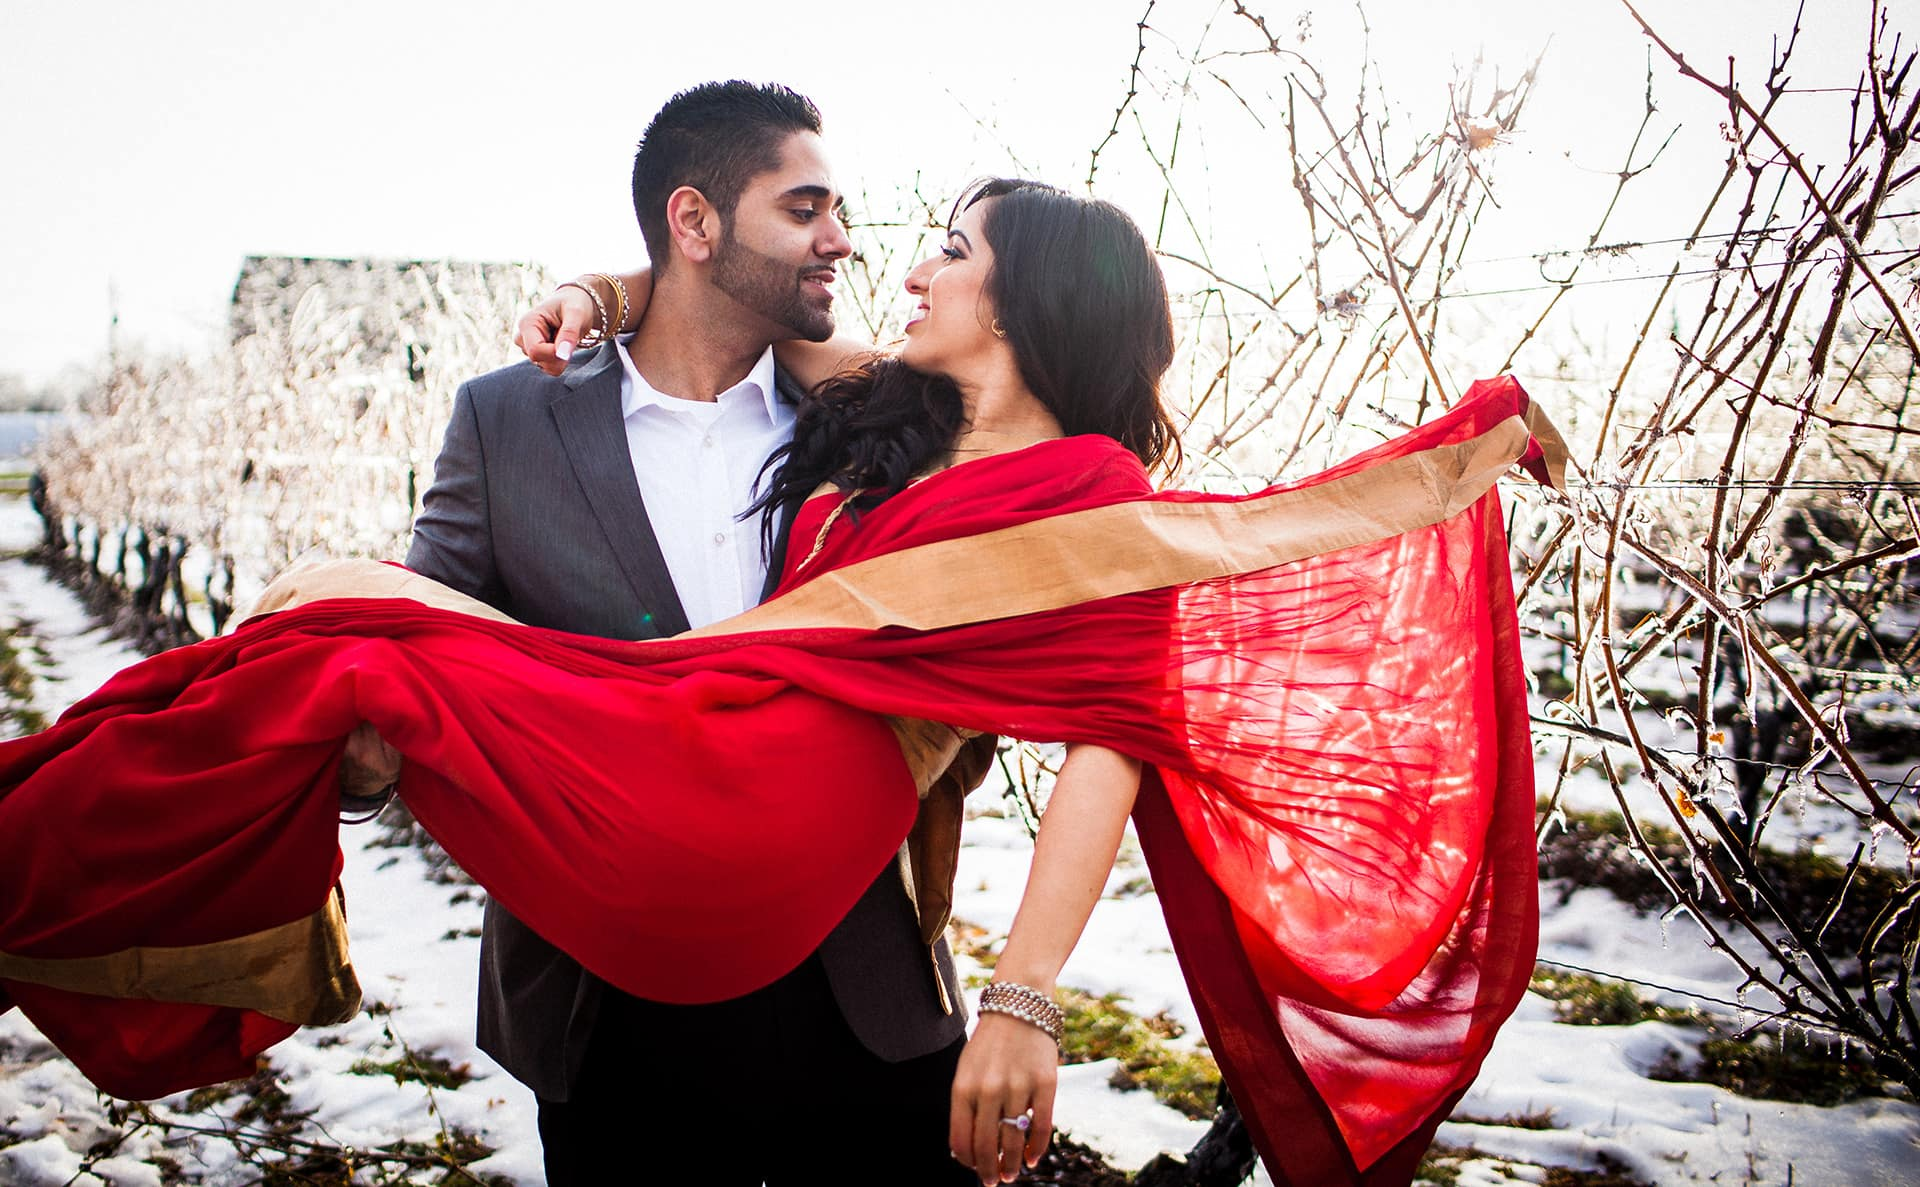 The bride-to-be gets her red sari caught on a branch.